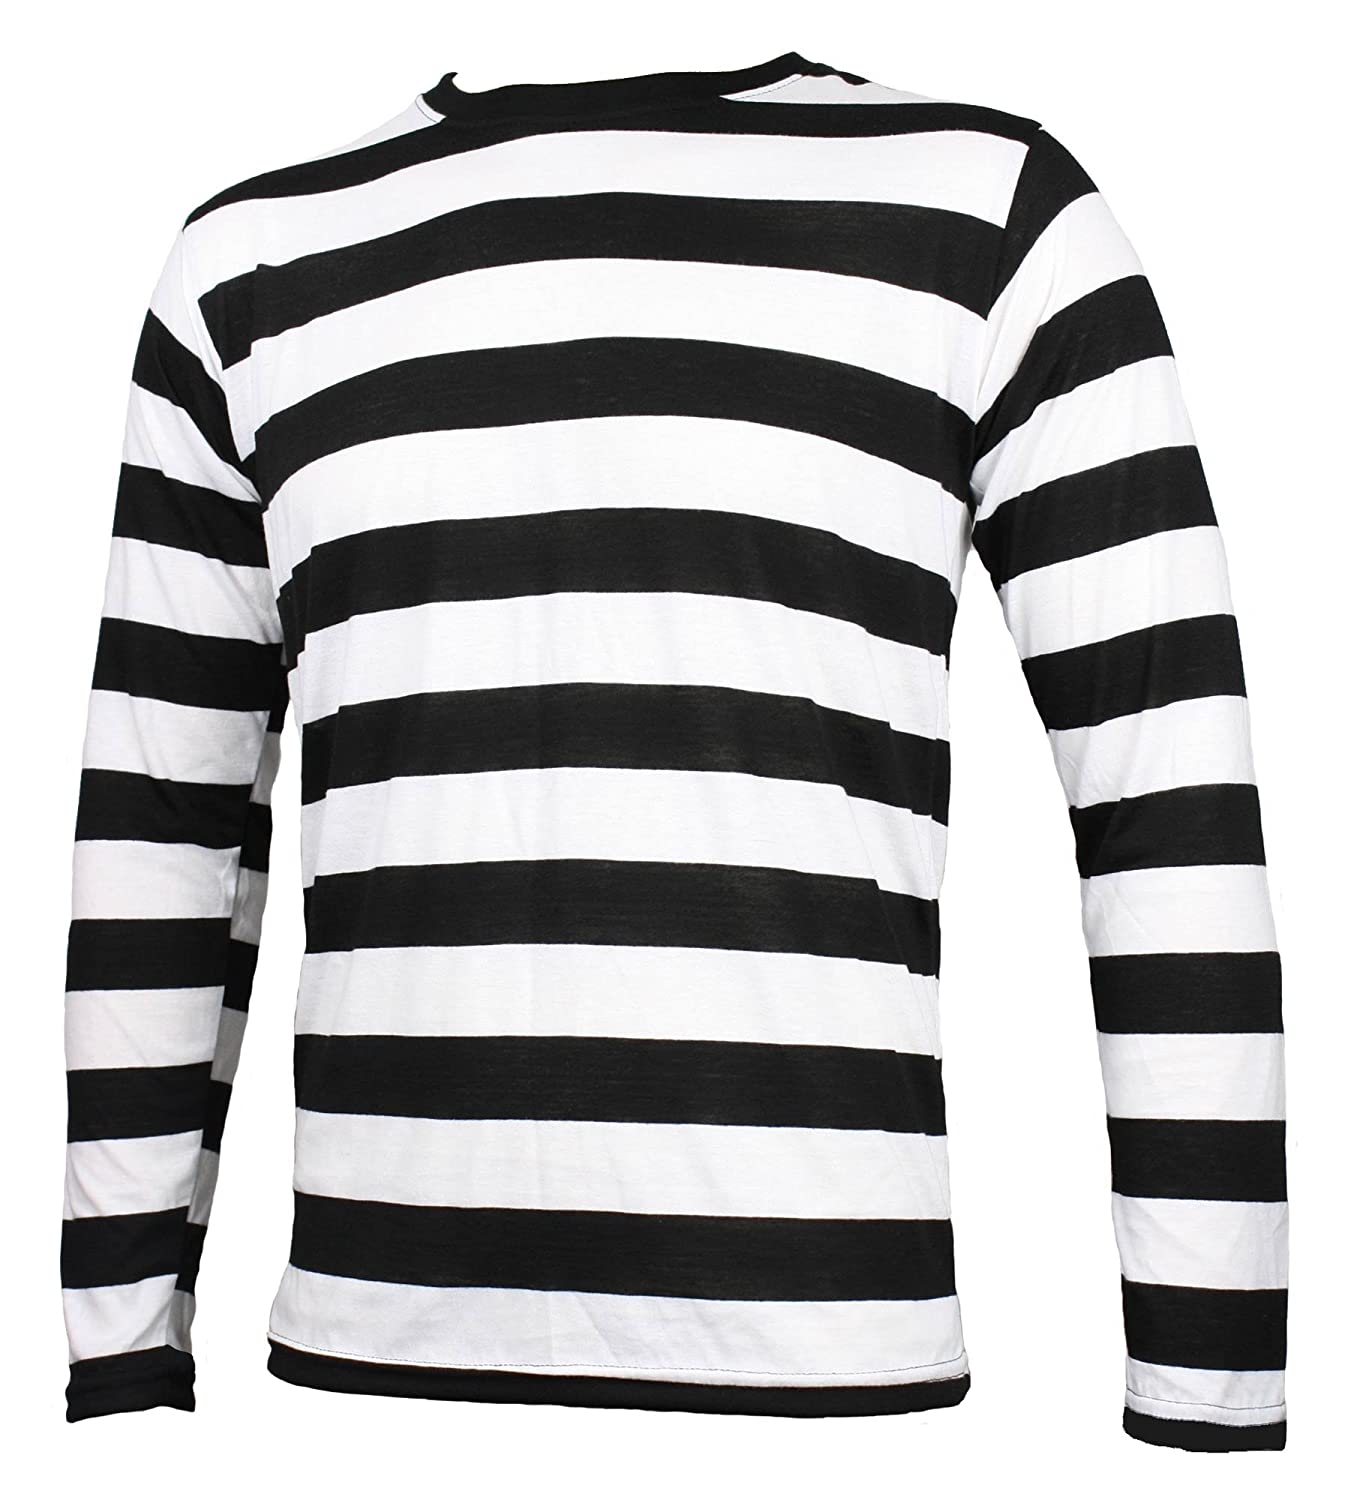 White And Black Striped Shirt Men